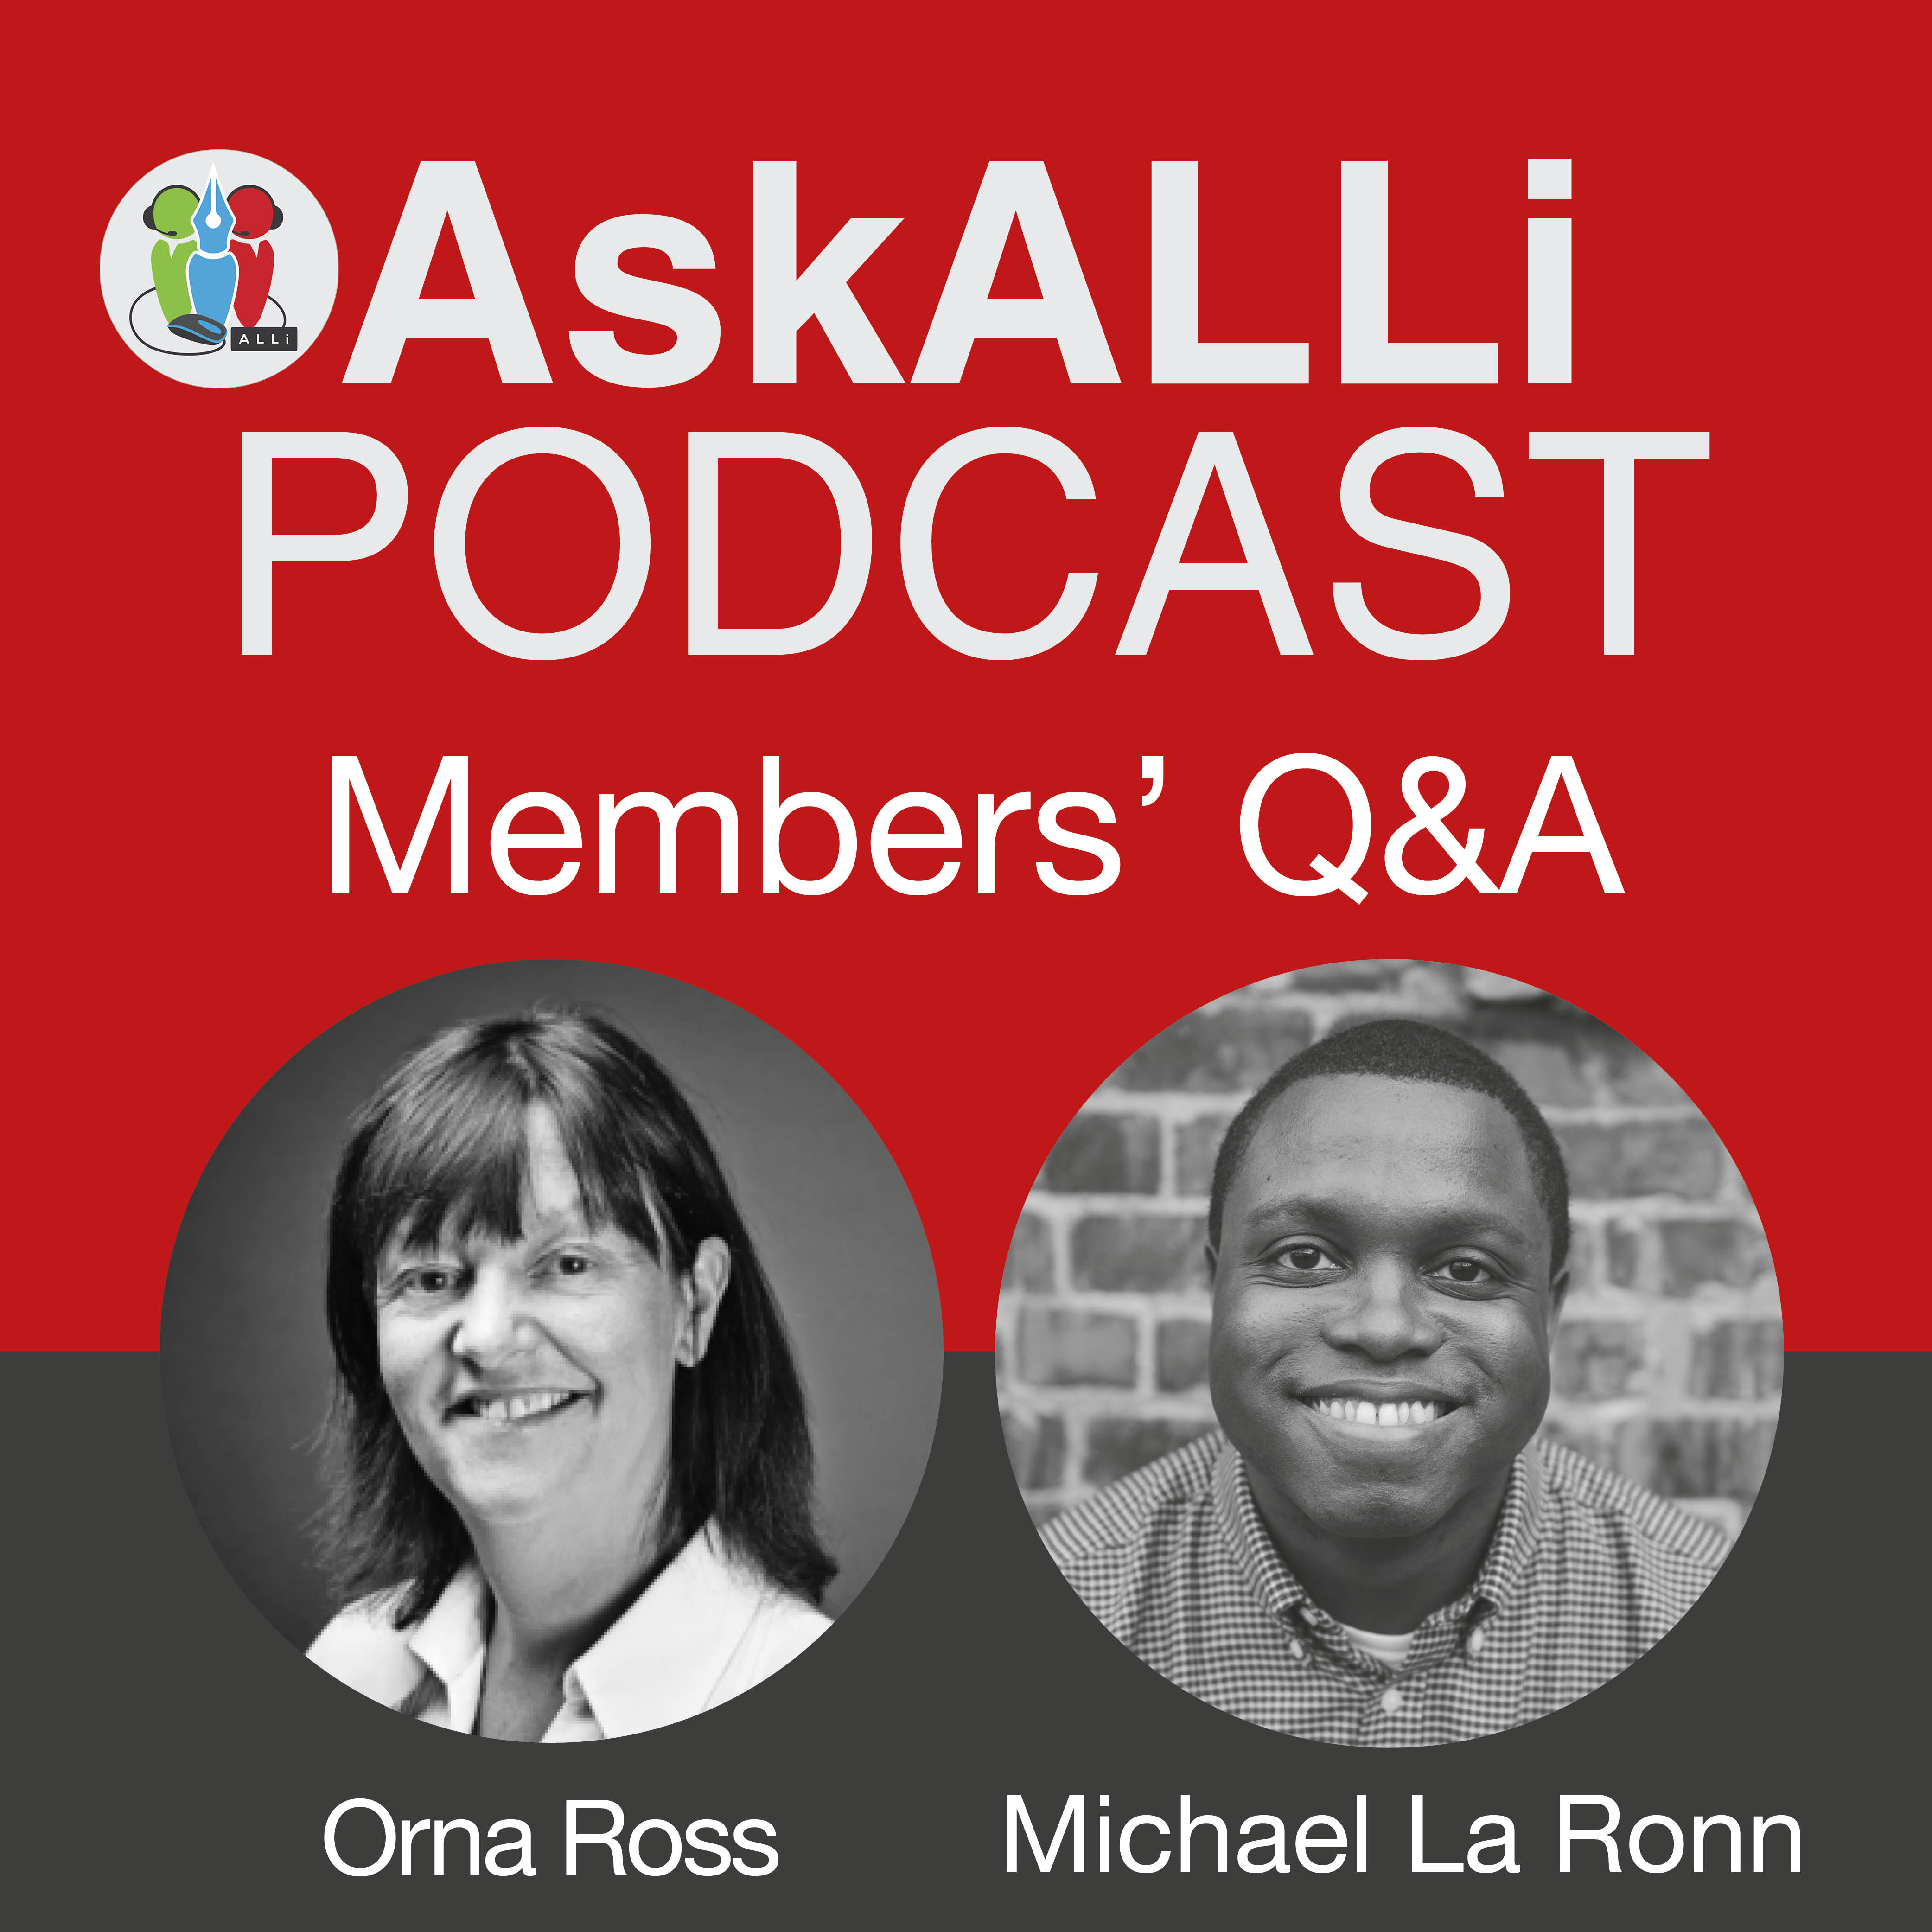 How To Find A Translator For Your Book; Other Questions Answered; News From The Self-Publishing World: AskALLi Member's Q&A With Orna Ross And Michael La Ronn